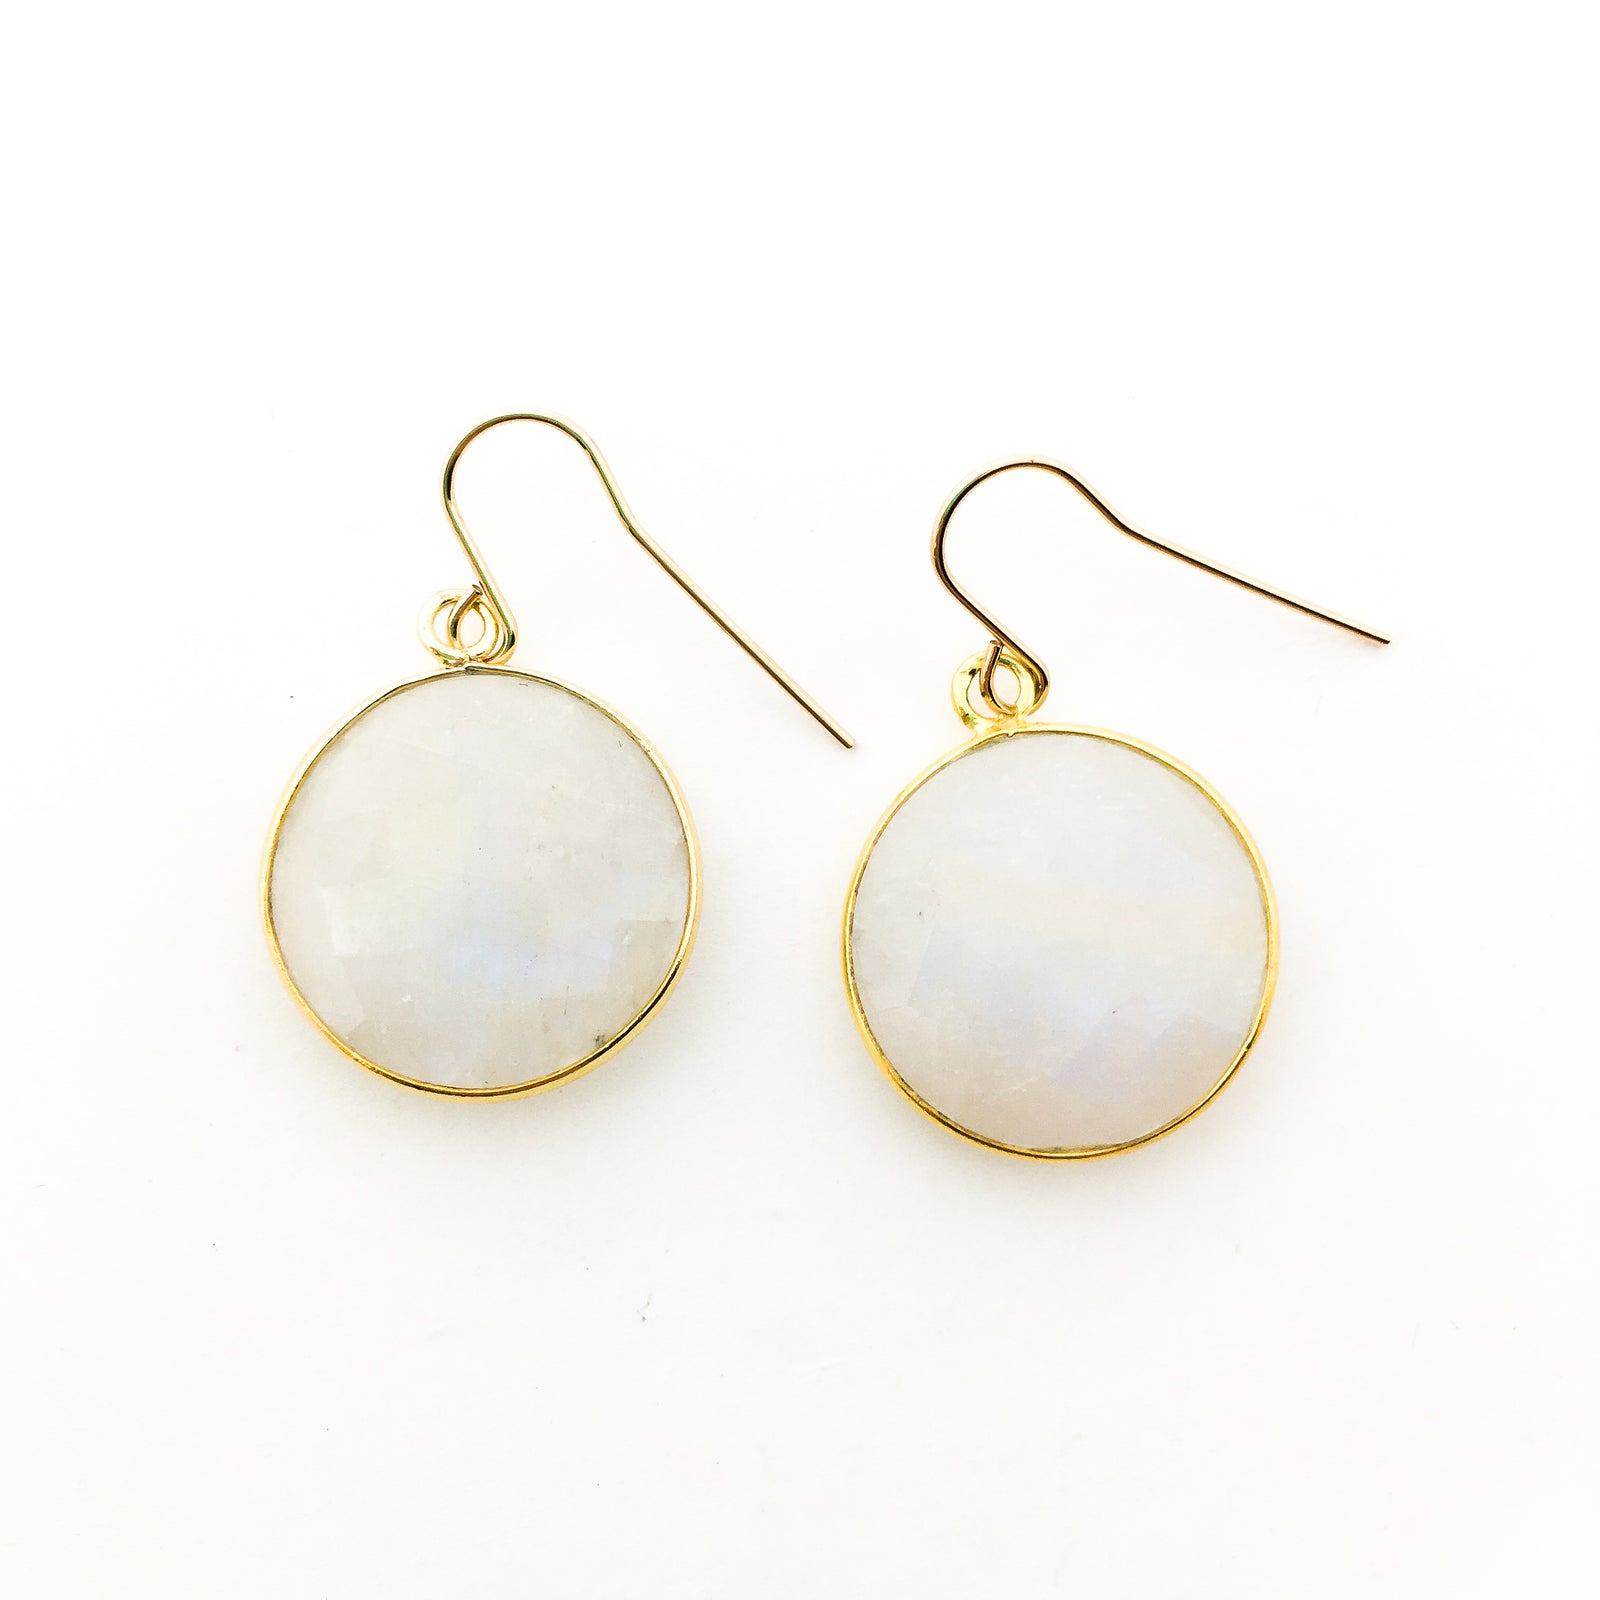 ROUND MOONSTONE DROP EARRINGS | 14K GOLD-FILLED